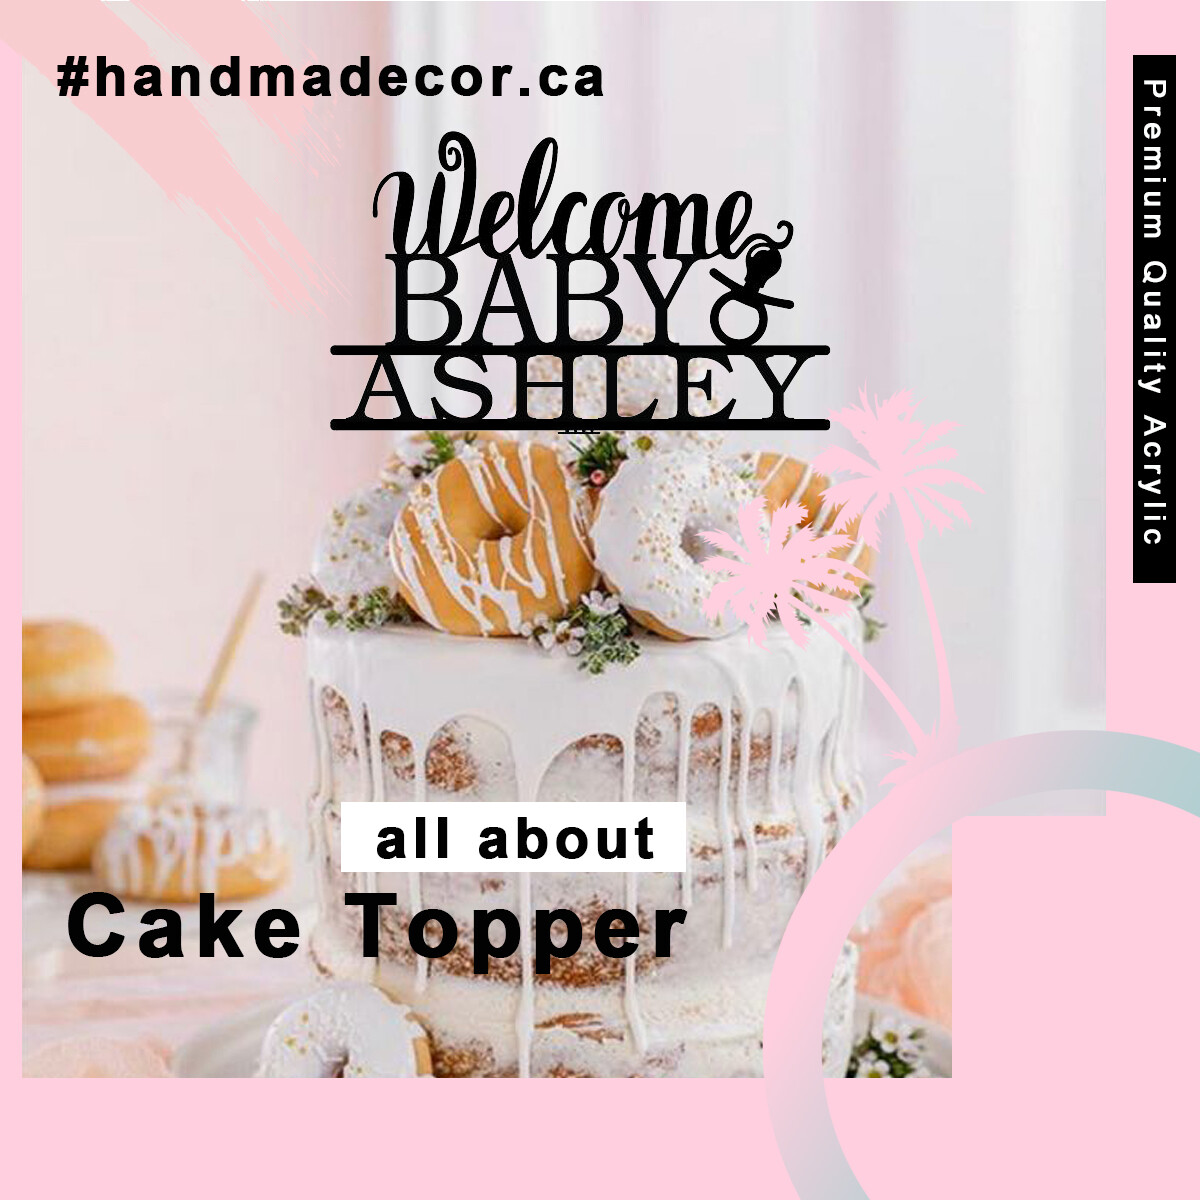 A digital file welcome baby Acrylic Cake Topper -Personalized Party Cake Toppers Decoration